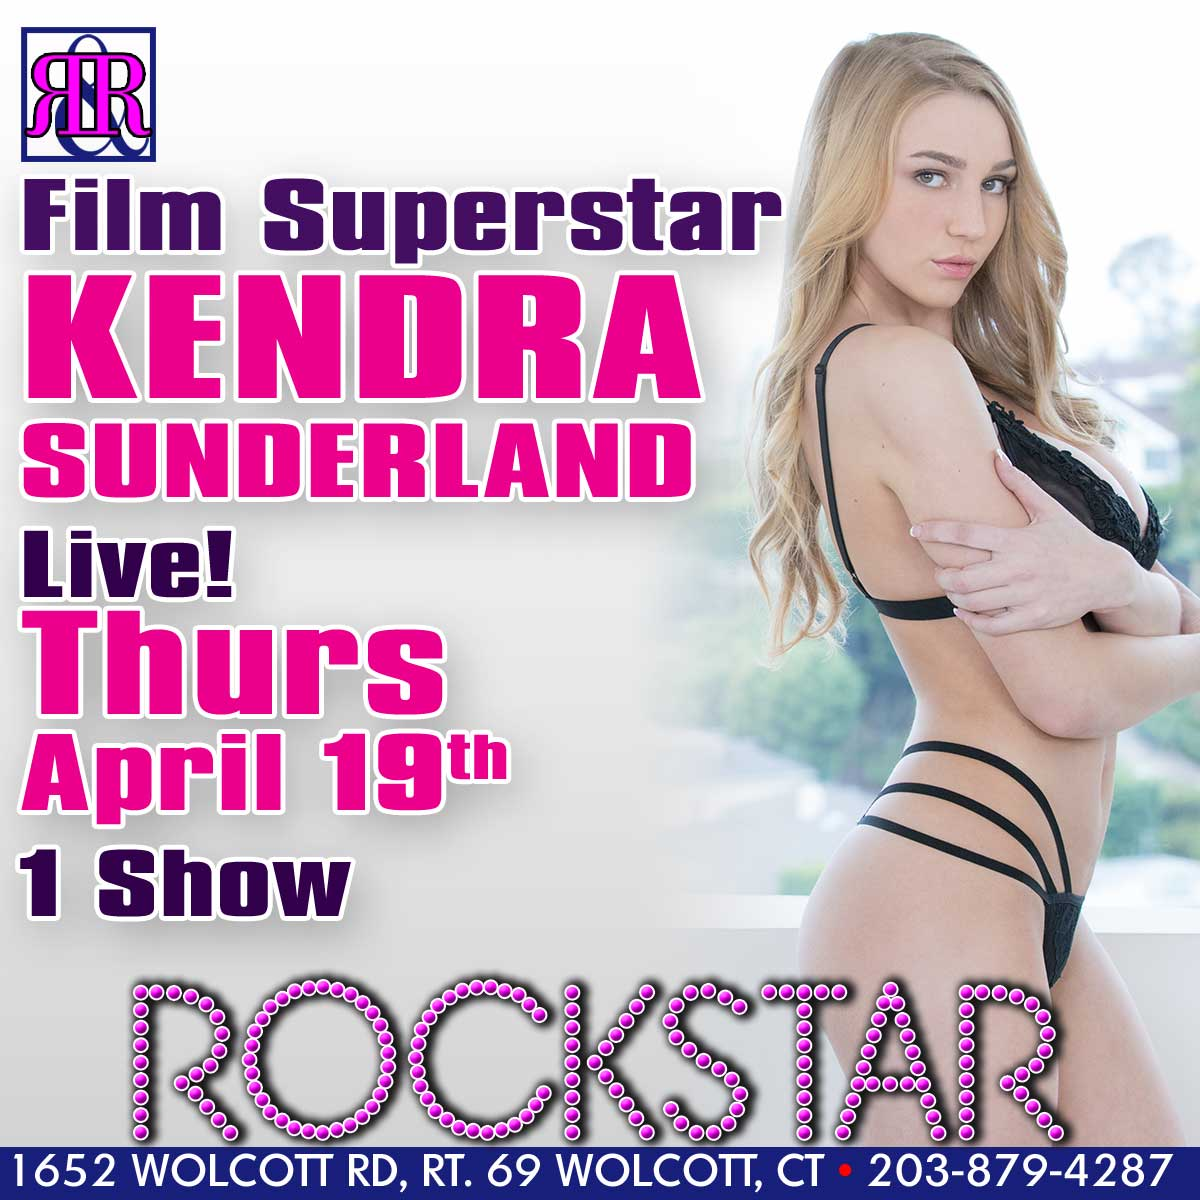 XXX Superstar Kendra Sunderland | Rockstar Strip Club Connecticut